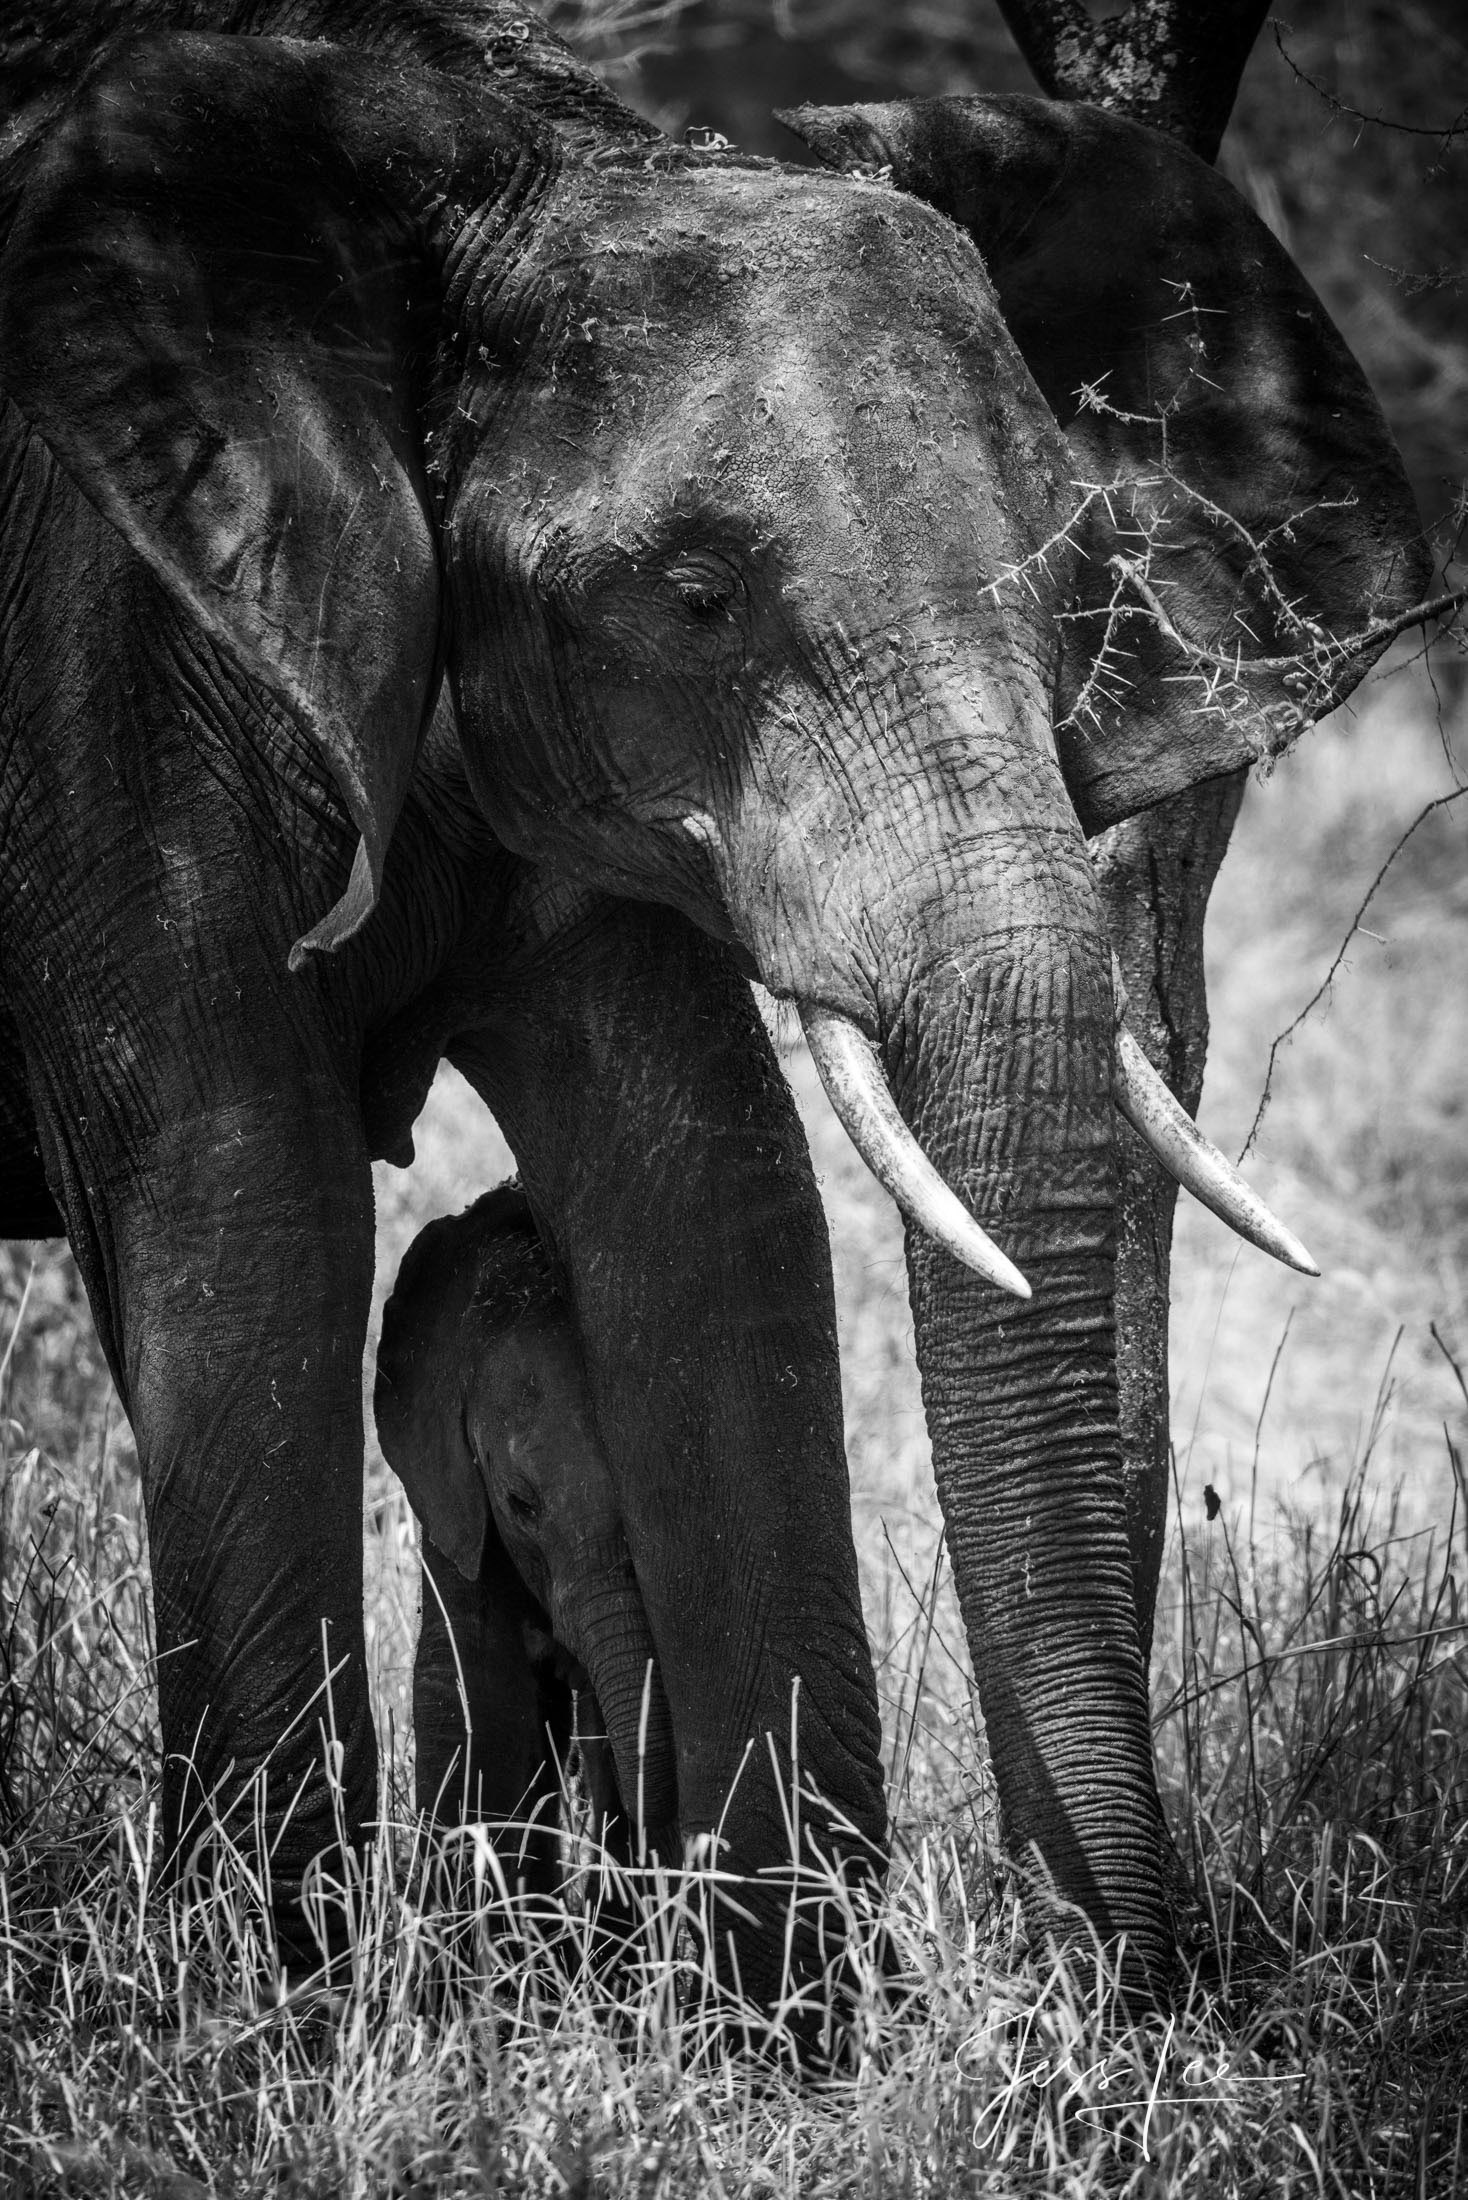 Black and White photo of African elephant and baby.